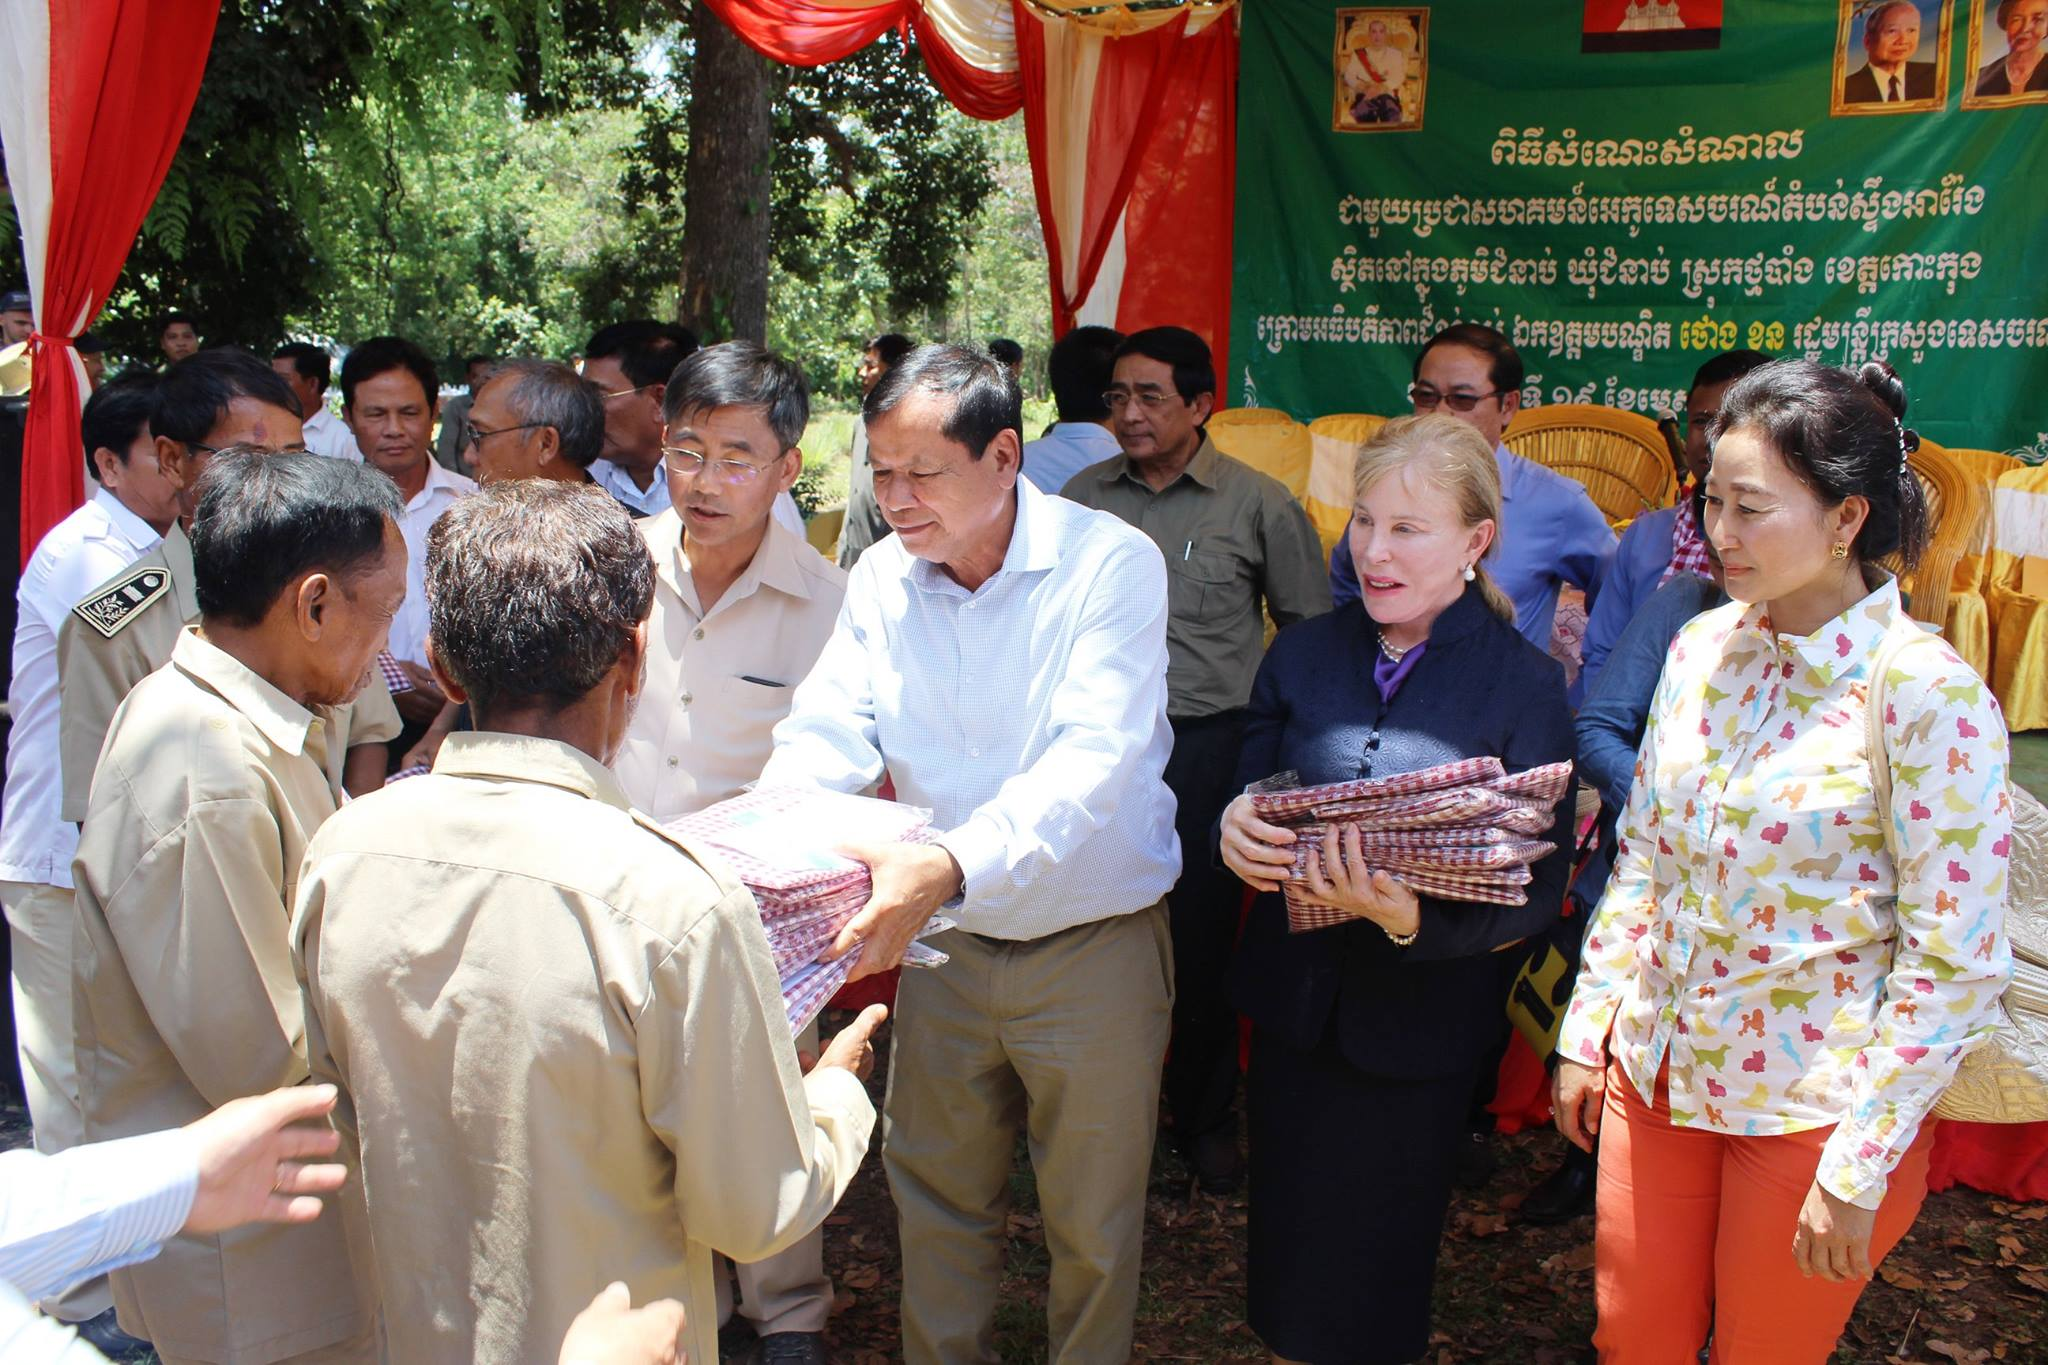 Community-Based Ecotourism Chhay Areng Valley - H.E. Thong Khon, Minister of Tourism and Suwanna Gauntlett CEO WA Community-Based Ecotourism Chhay Areng Valley – H.E. Thong Khon, Minister of Tourism and Suwanna Gauntlett CEO WA HE Thong Khon and CEO Wildlife Alliance Suwanna Gauntlett Chhay Areng Valley community